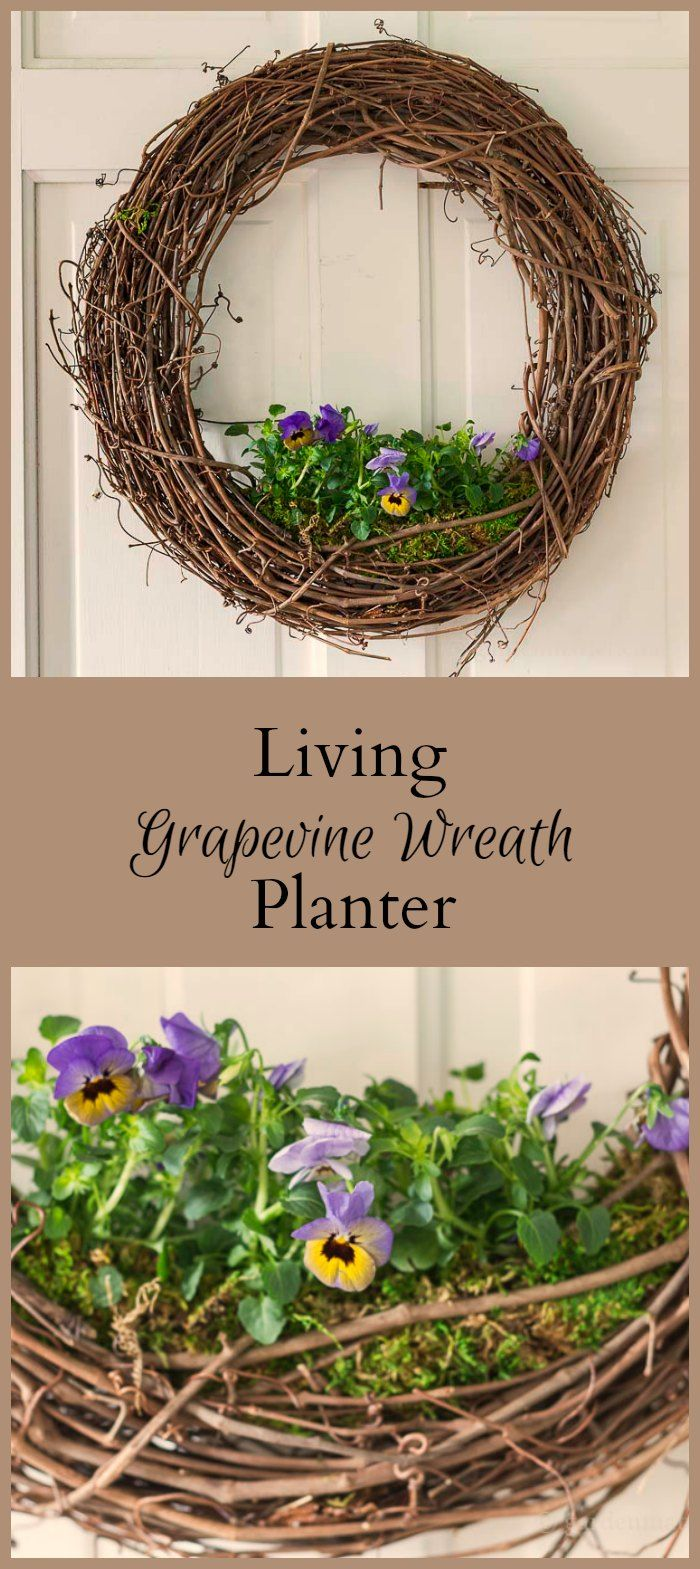 This tutorial for a living floral grapevine wreath is simple and straightforward. Just a few materials make a beautiful statement for your front door.